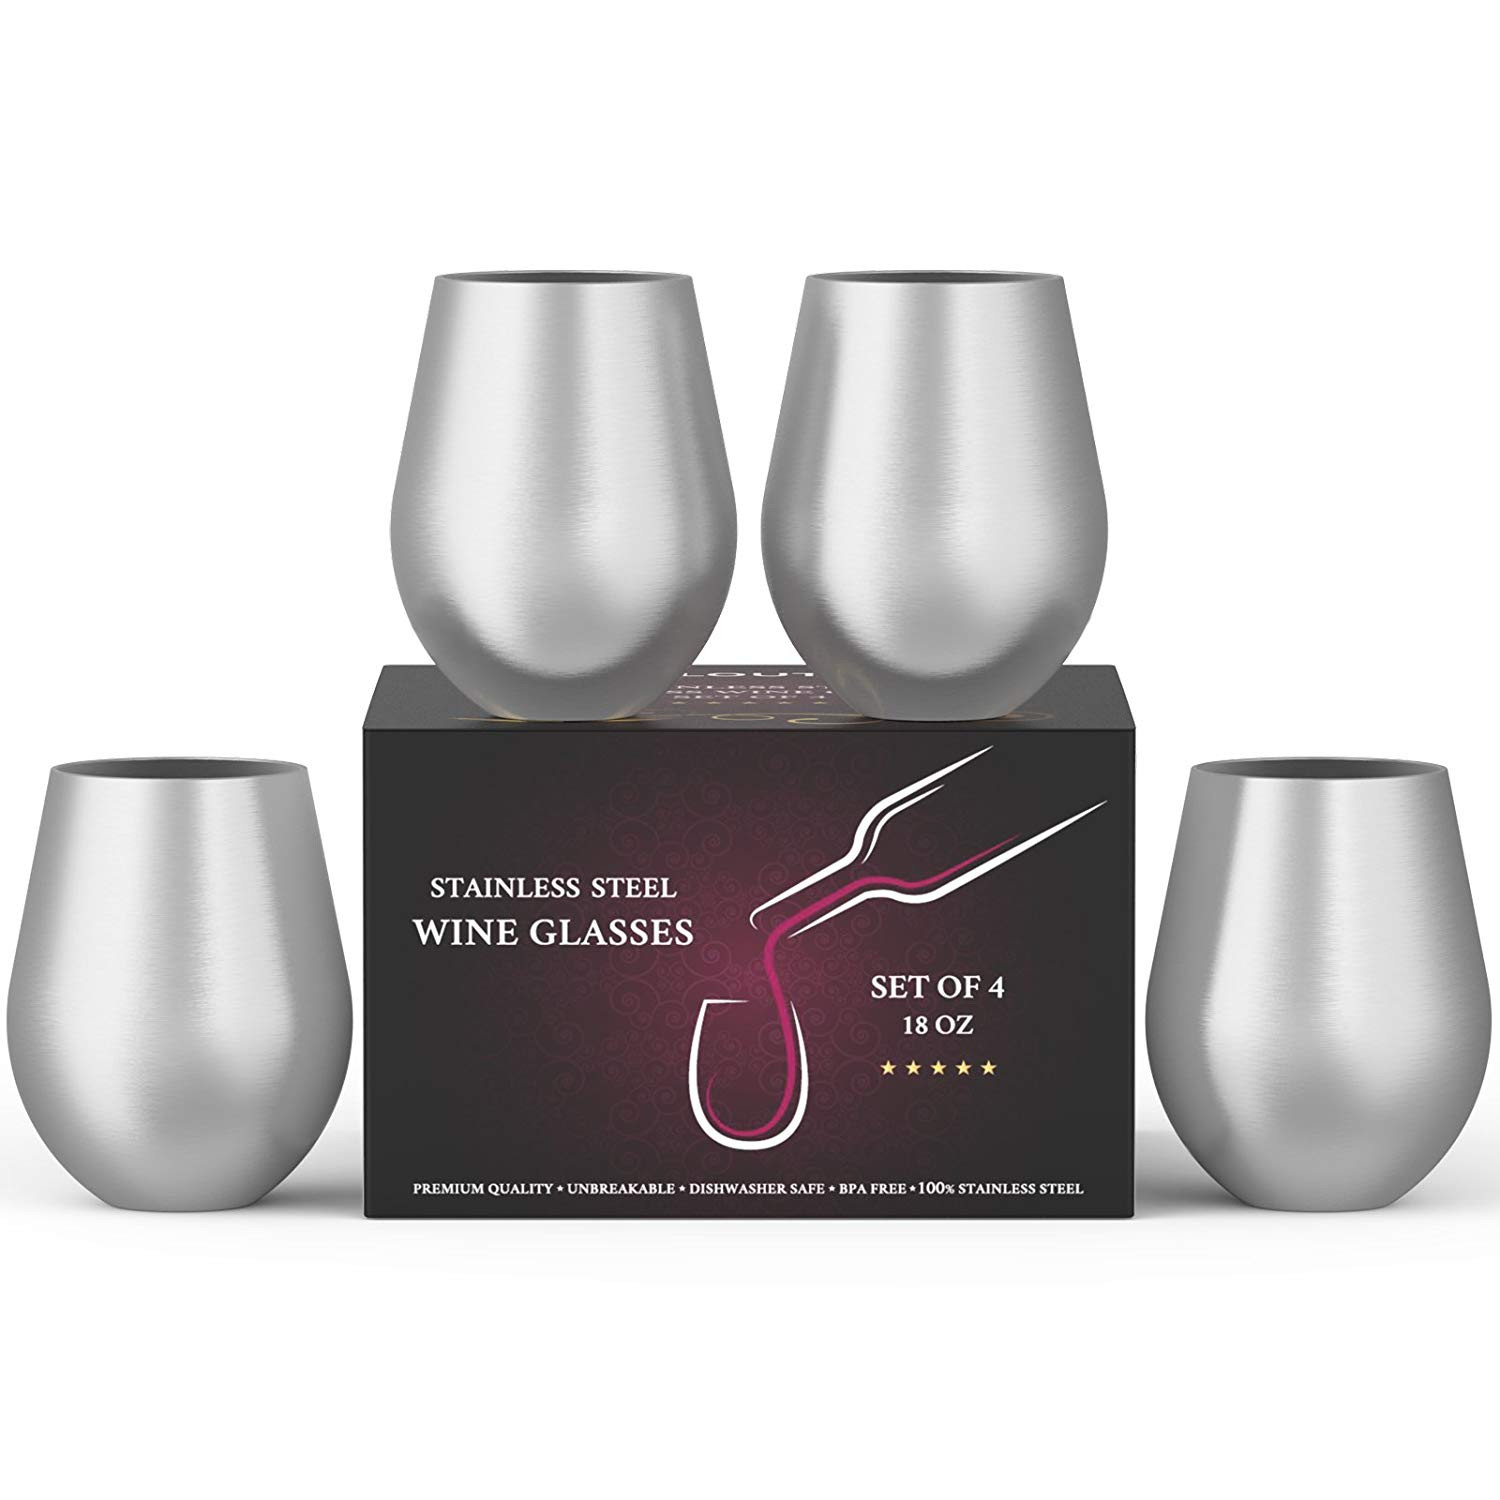 18 inch crystal vase of amazon com stainless steel wine stemless glasses set of 4 18 oz with regard to amazon com stainless steel wine stemless glasses set of 4 18 oz metal wine glasses 4 pack unbreakable dishwasher safe bpa free great for indoor